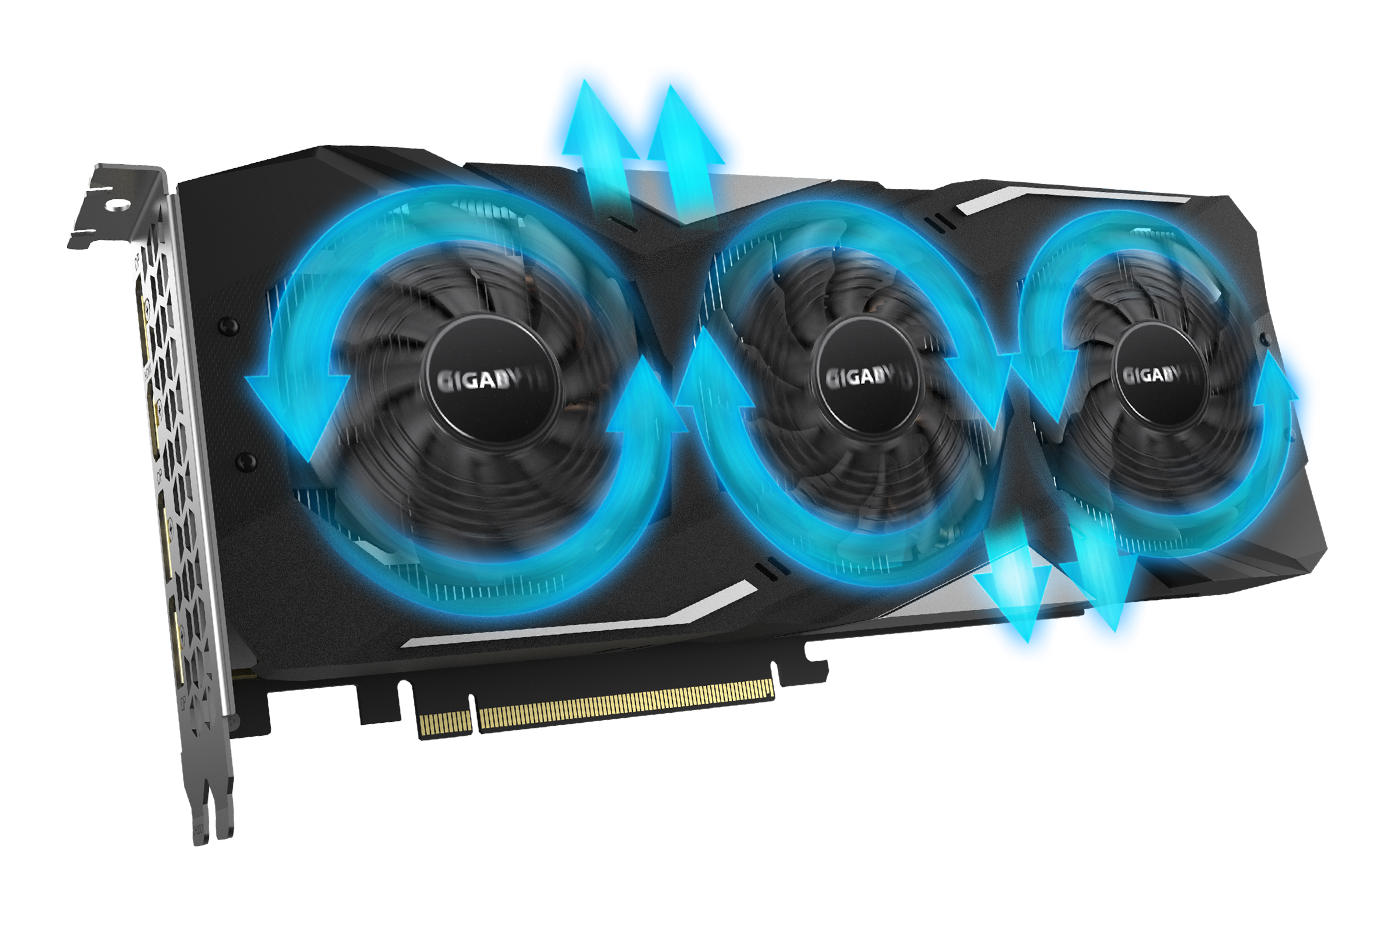 Graphic of the GIGABYTE GV-N208TWF3OC-11GC graphics card facing slightly to the right with arrows surrounding the fan, showing their spin cycles